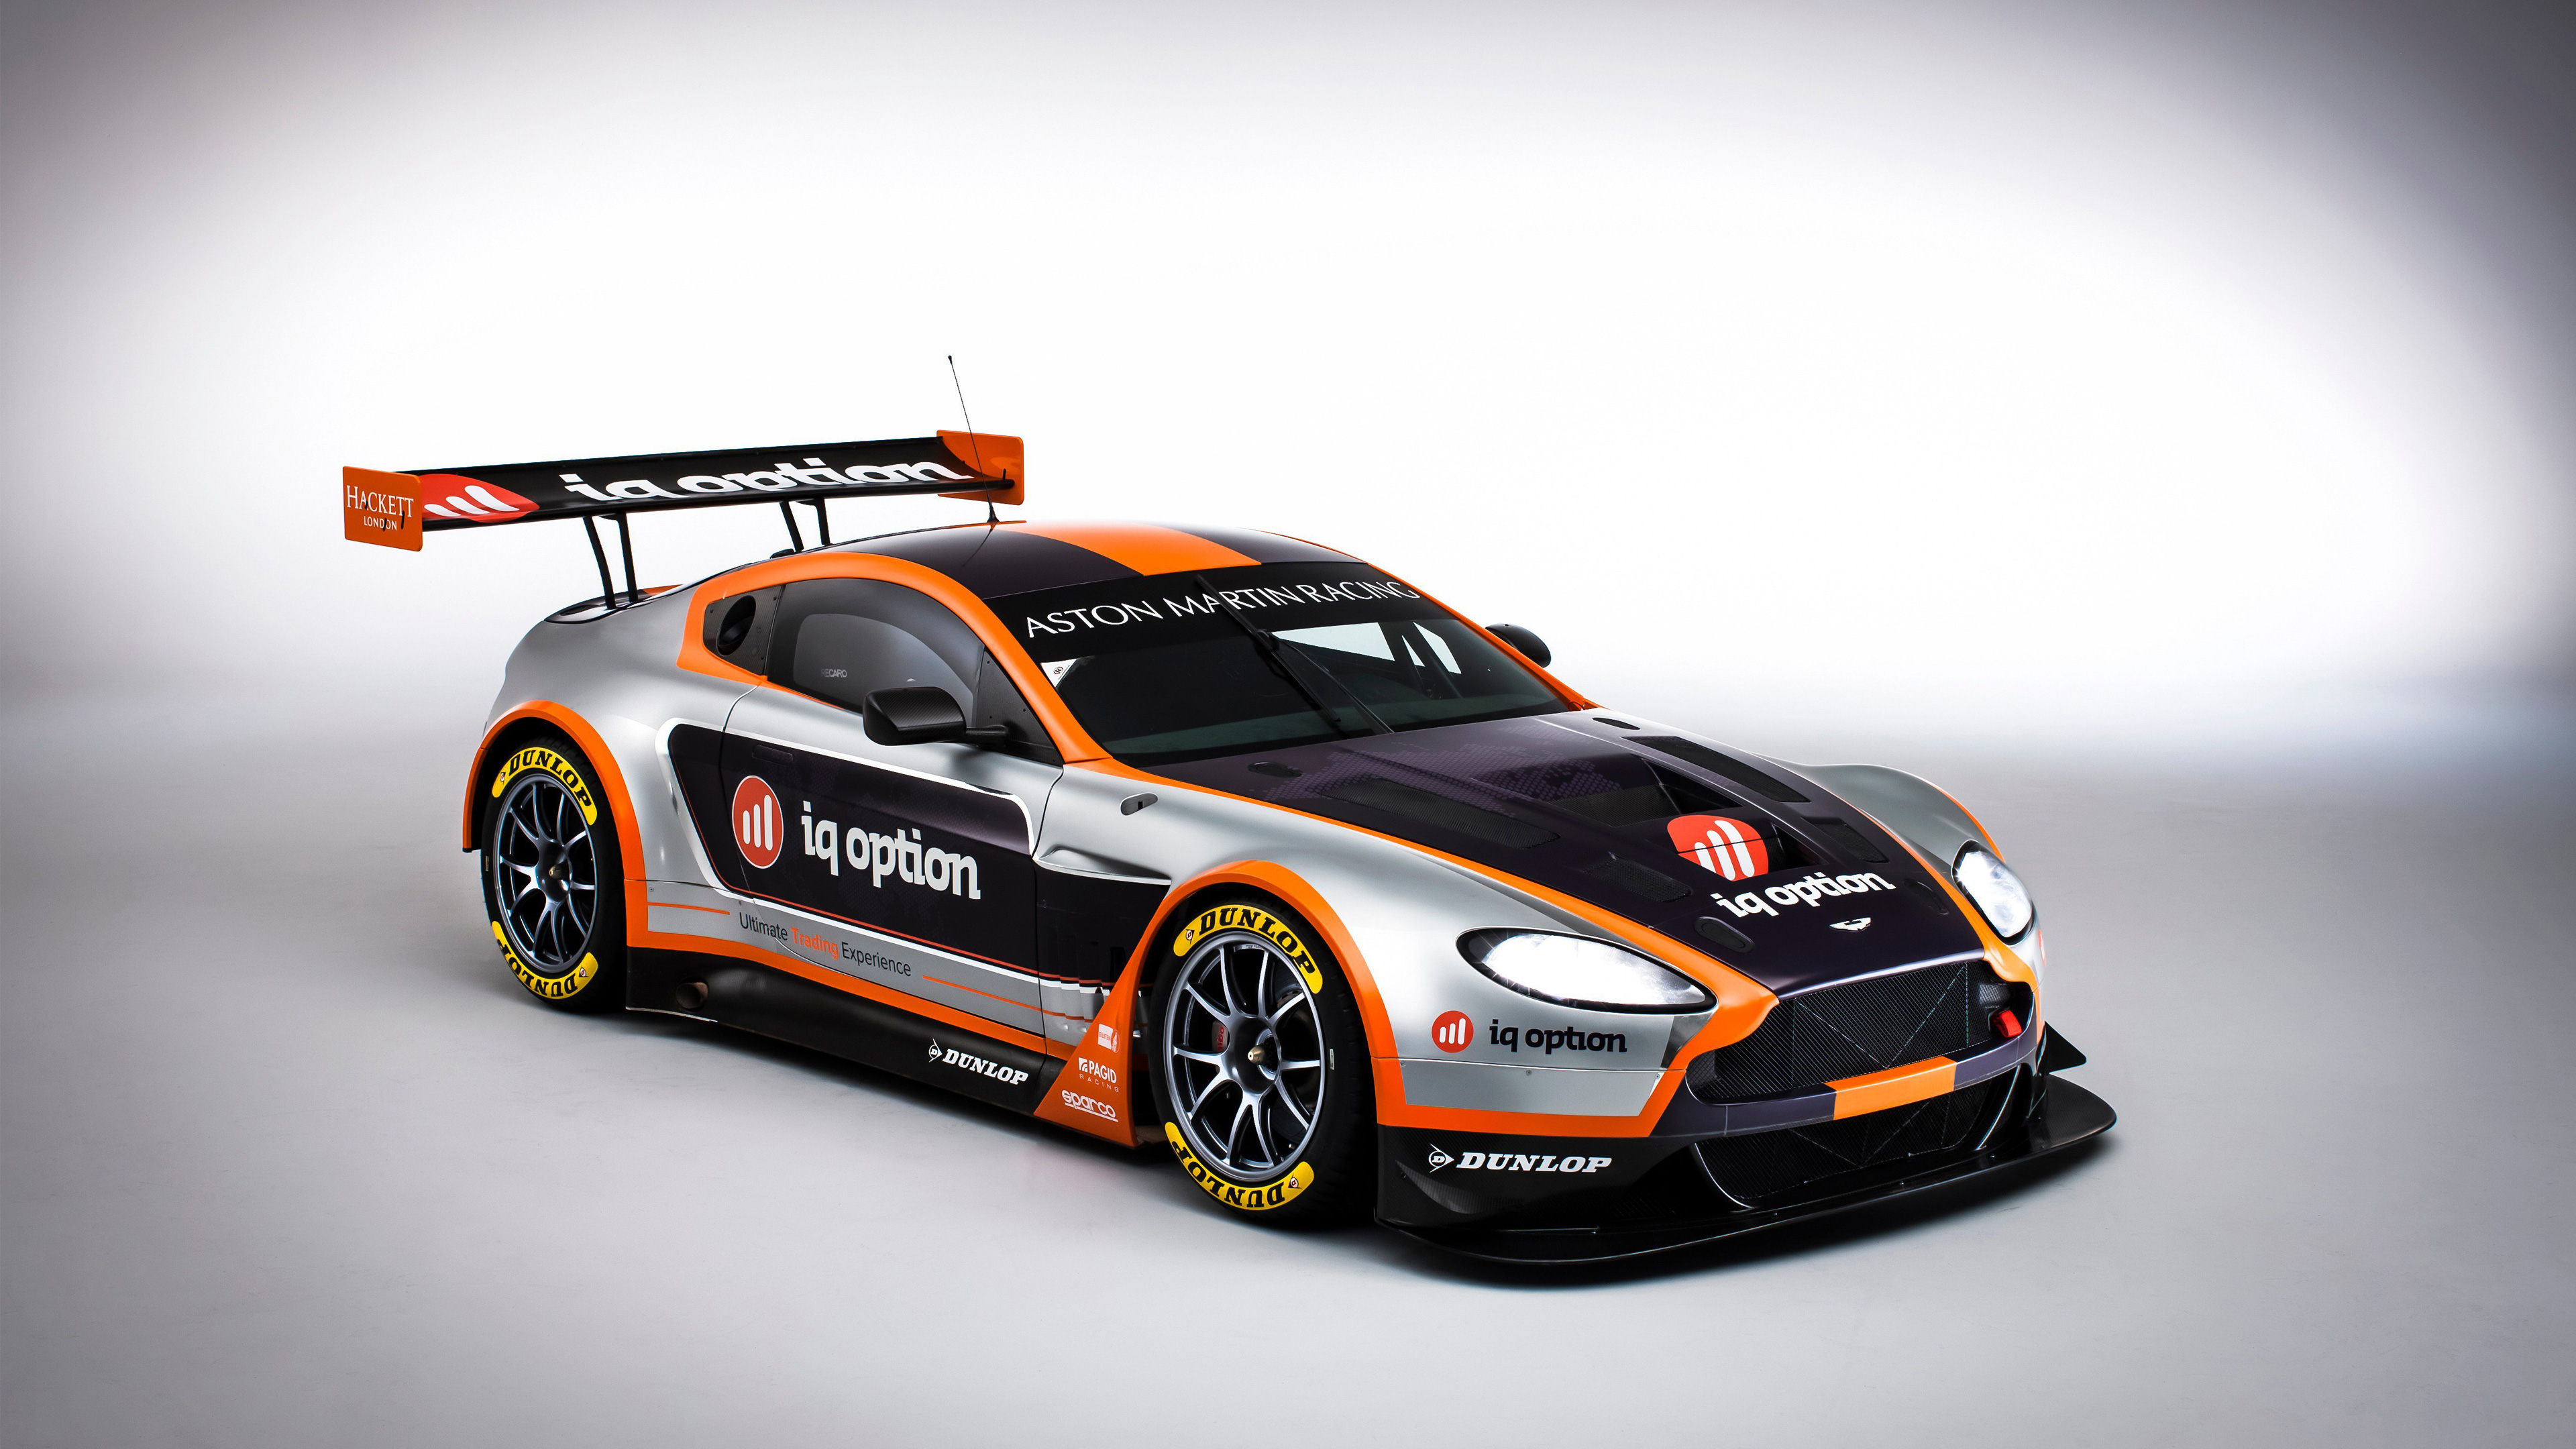 Tags: Aston Martin Racing